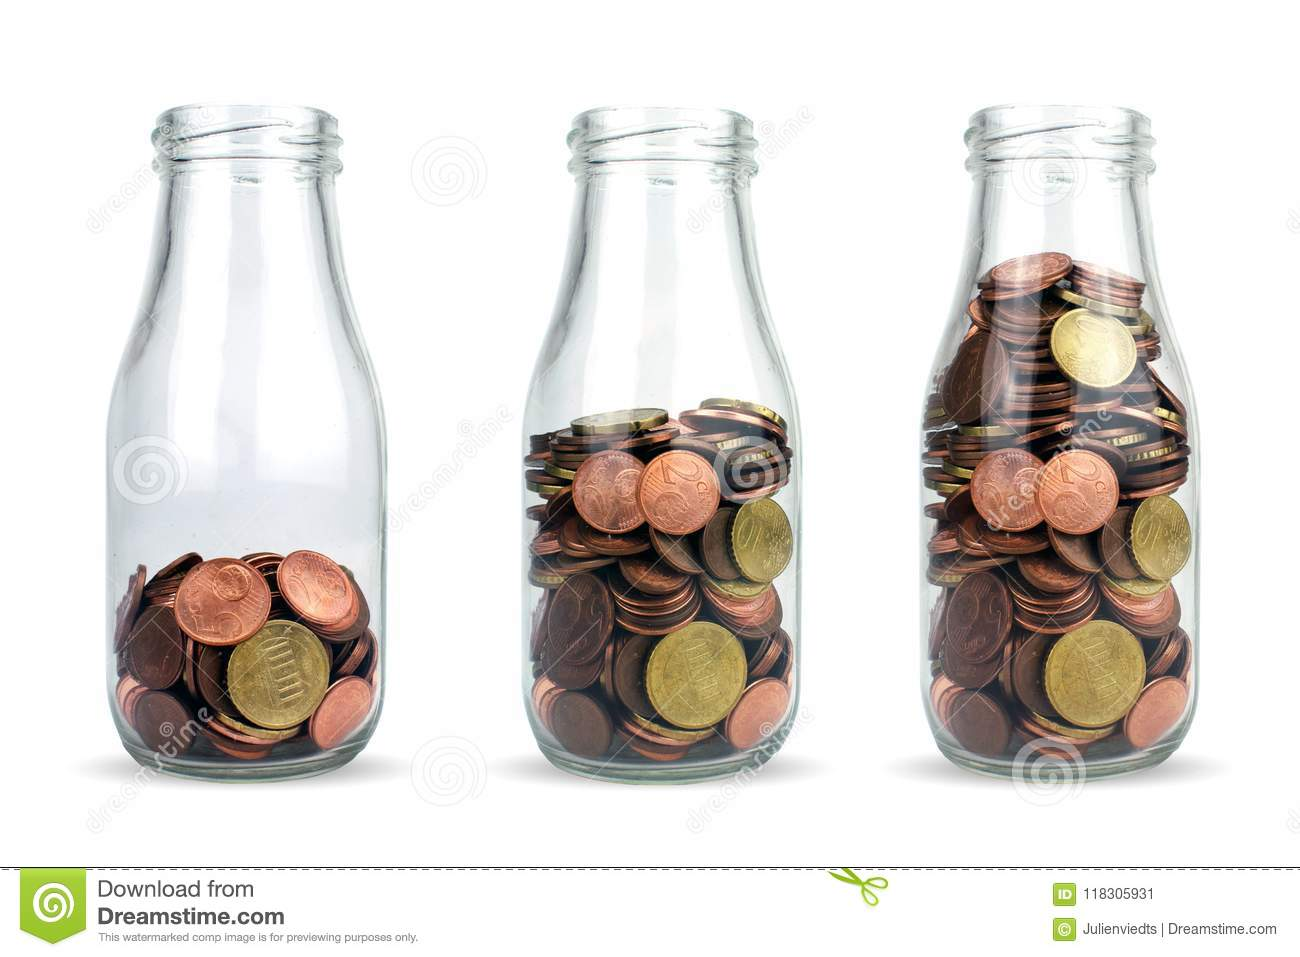 Investment in the future. Glass bottles with euro coins like diagram isolated.